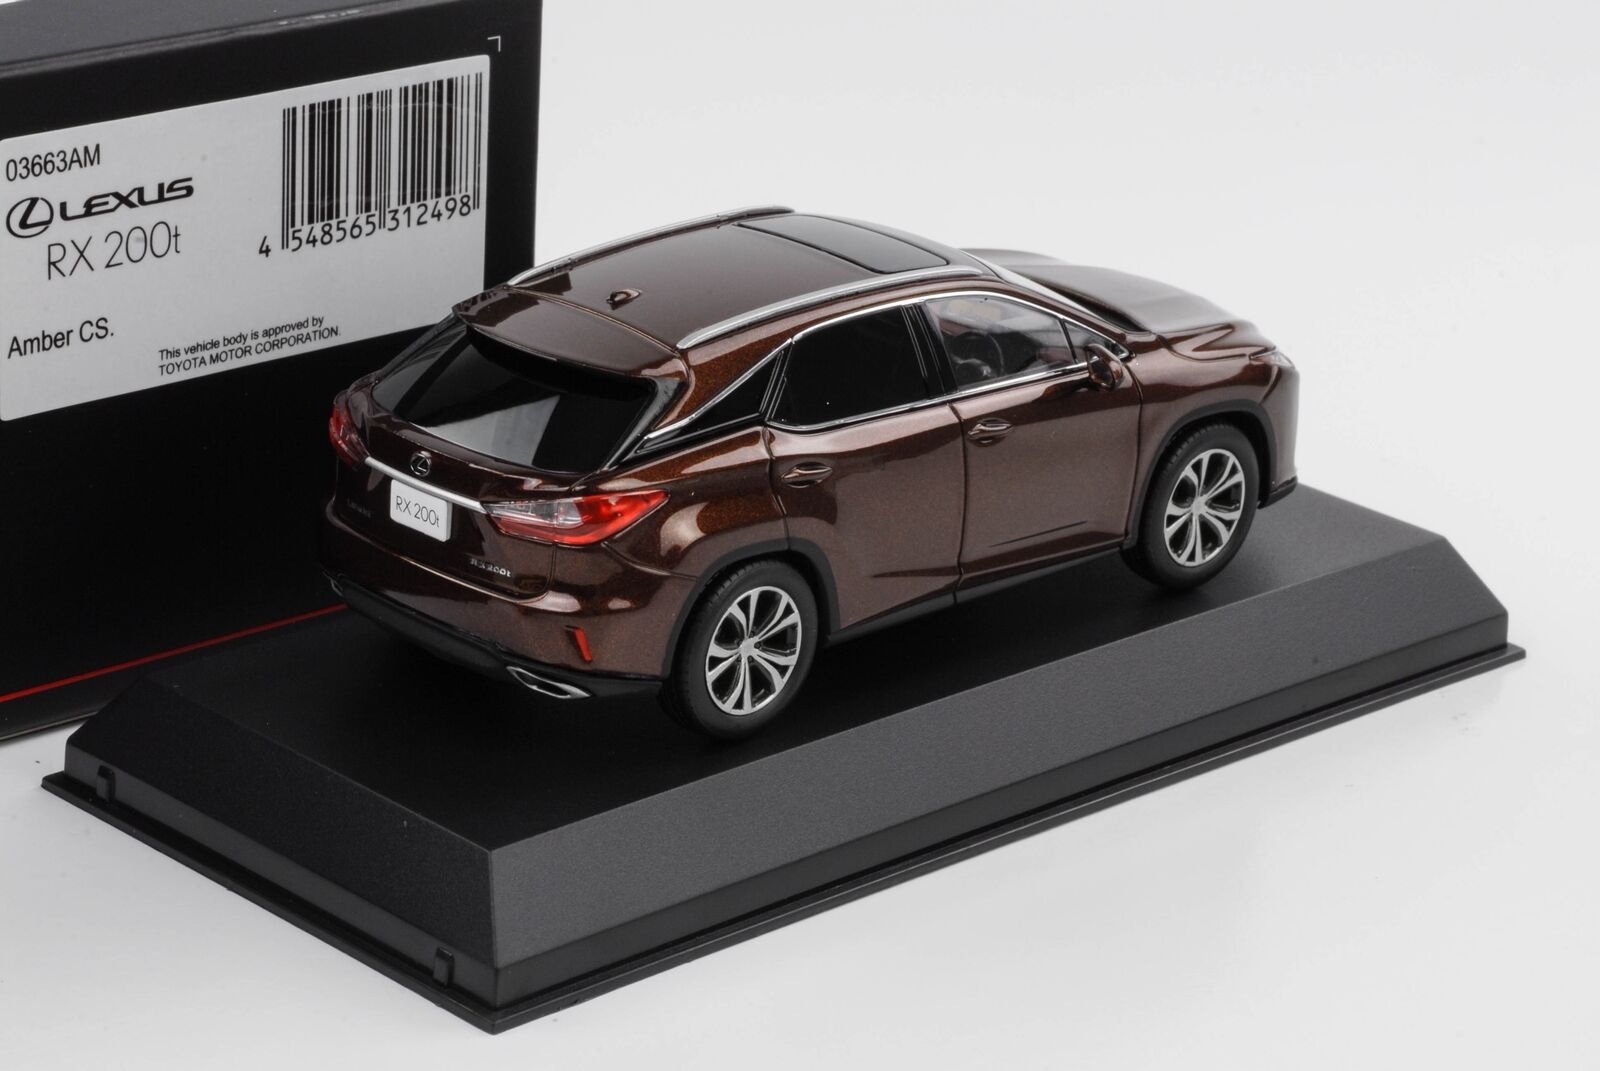 Lexus IS 350 F Sport red mica crystal shin 1:43 Kyosho diecast